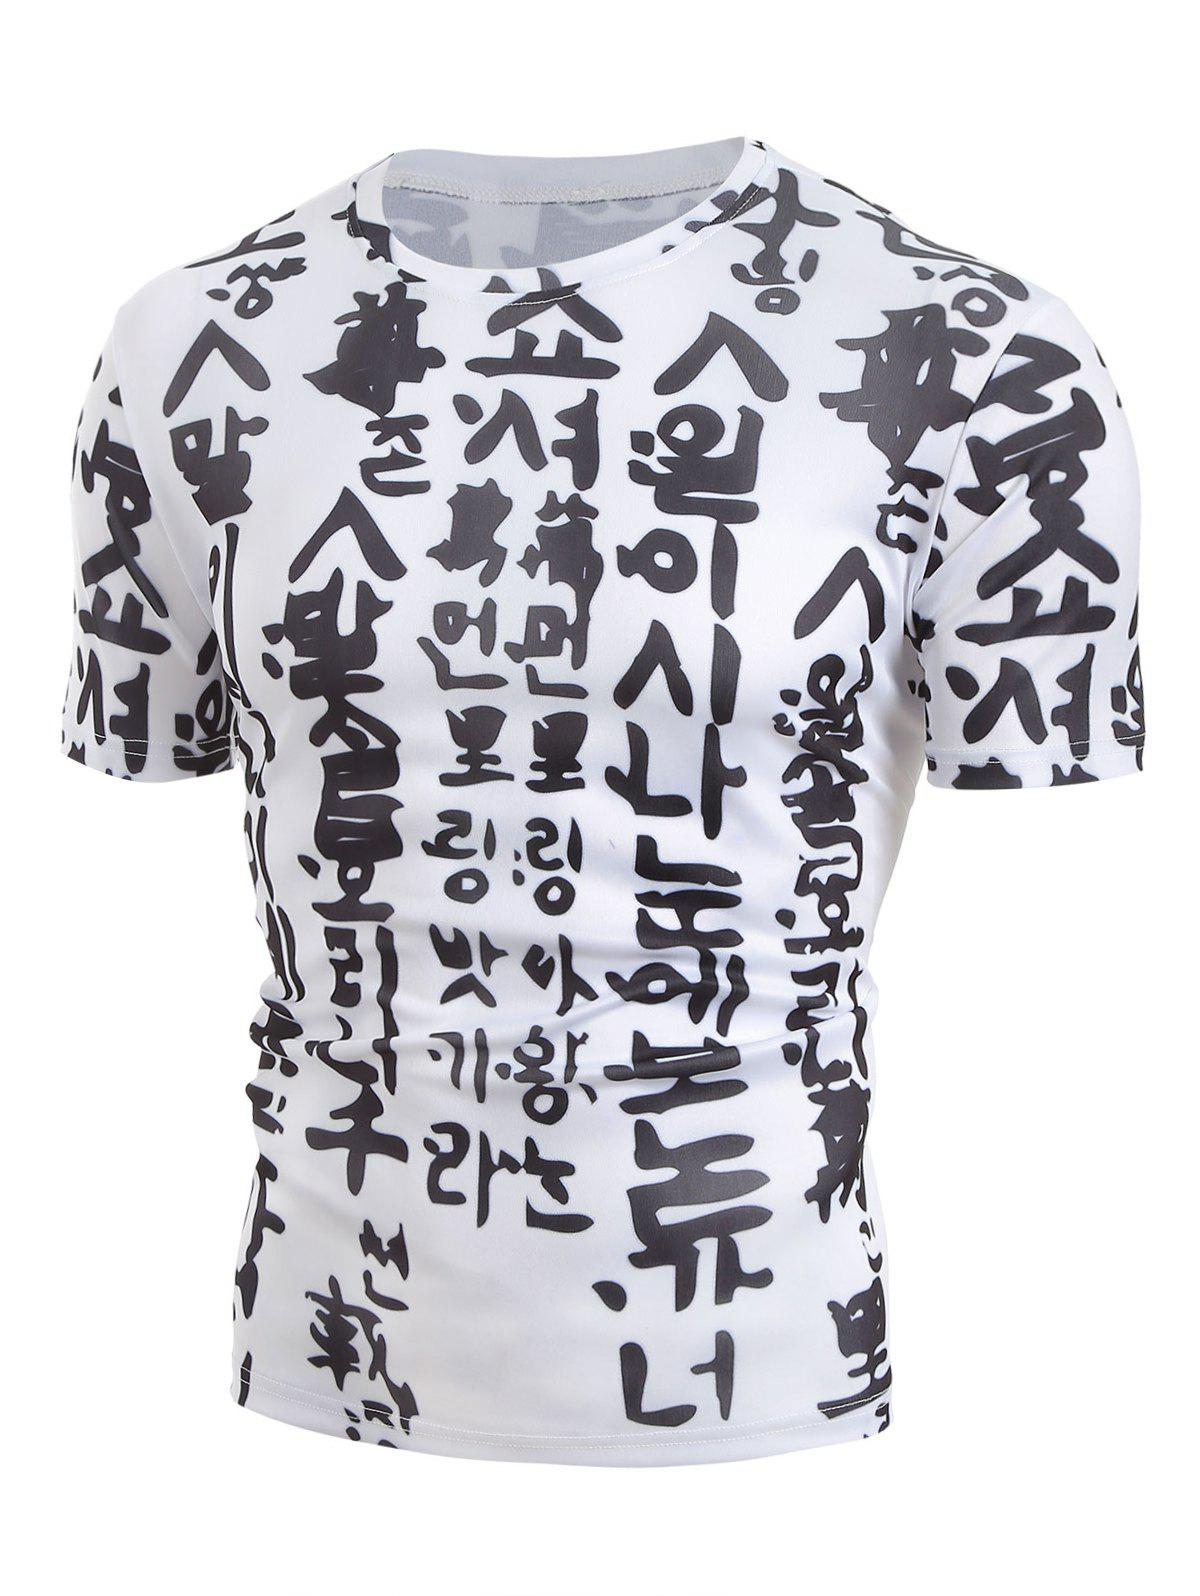 Outfit Korean Characters Print Round Neck T-shirt